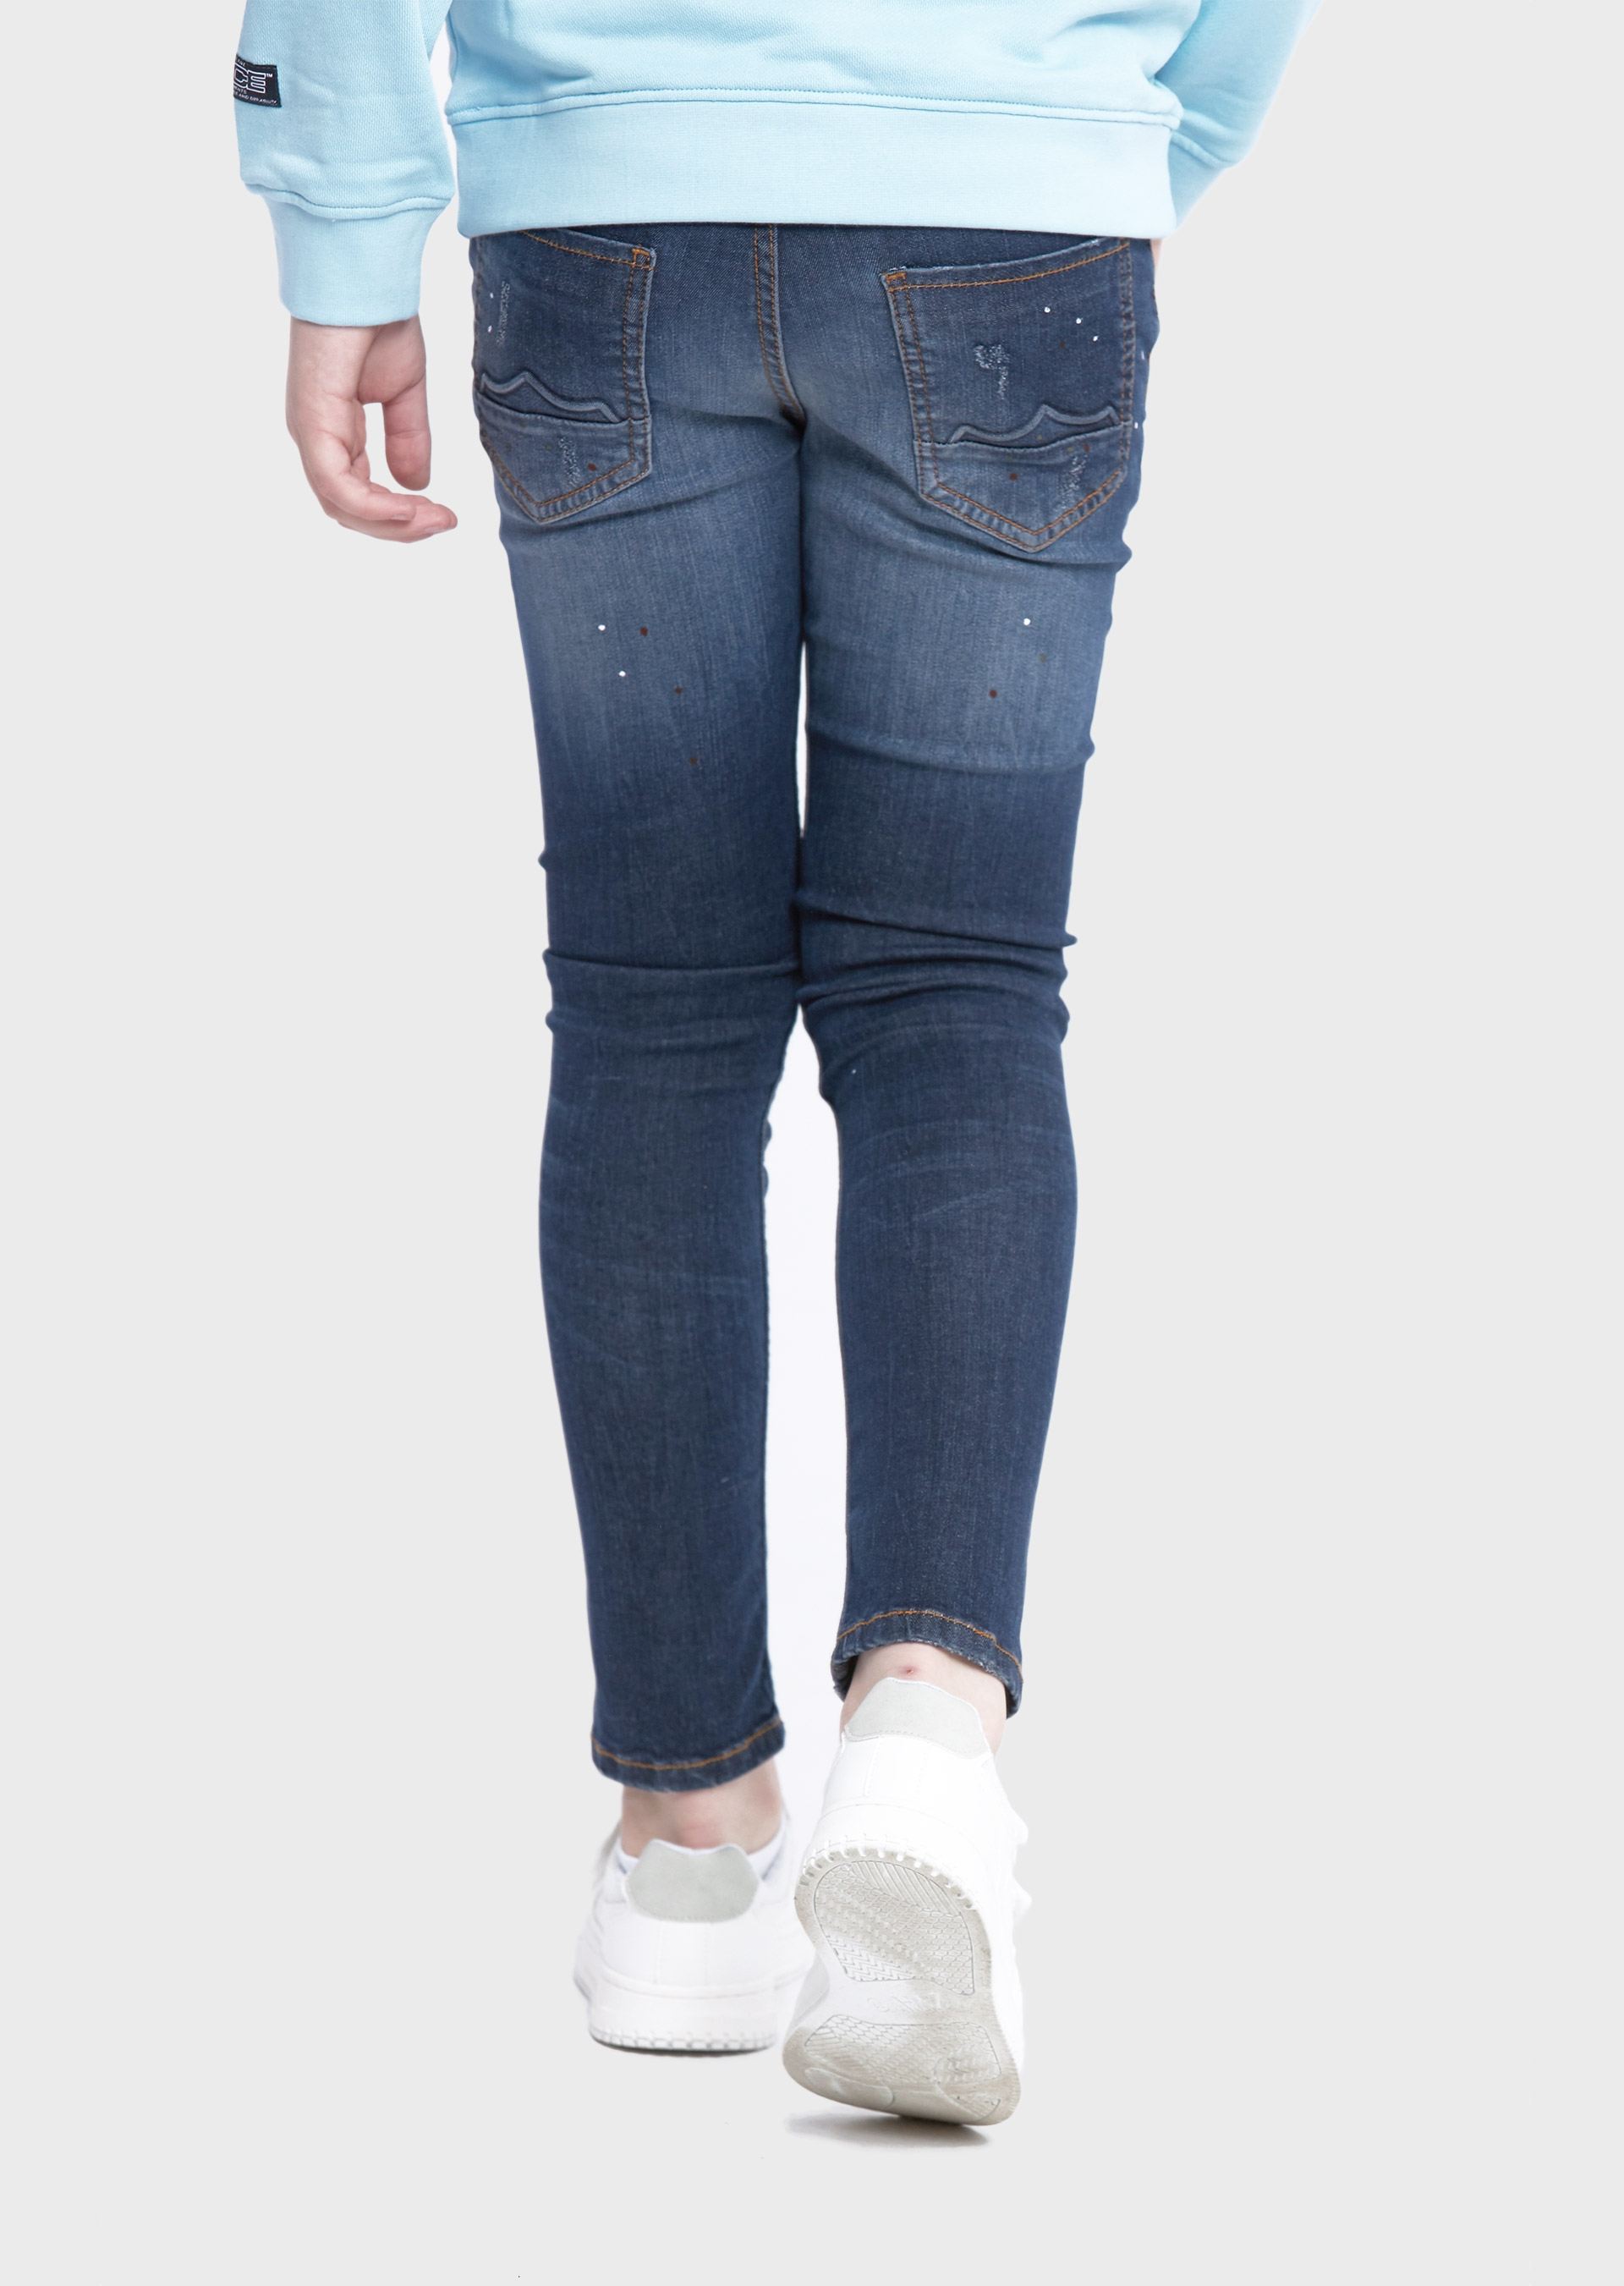 Axul Laker 643 Blue Kids Jeans second_image